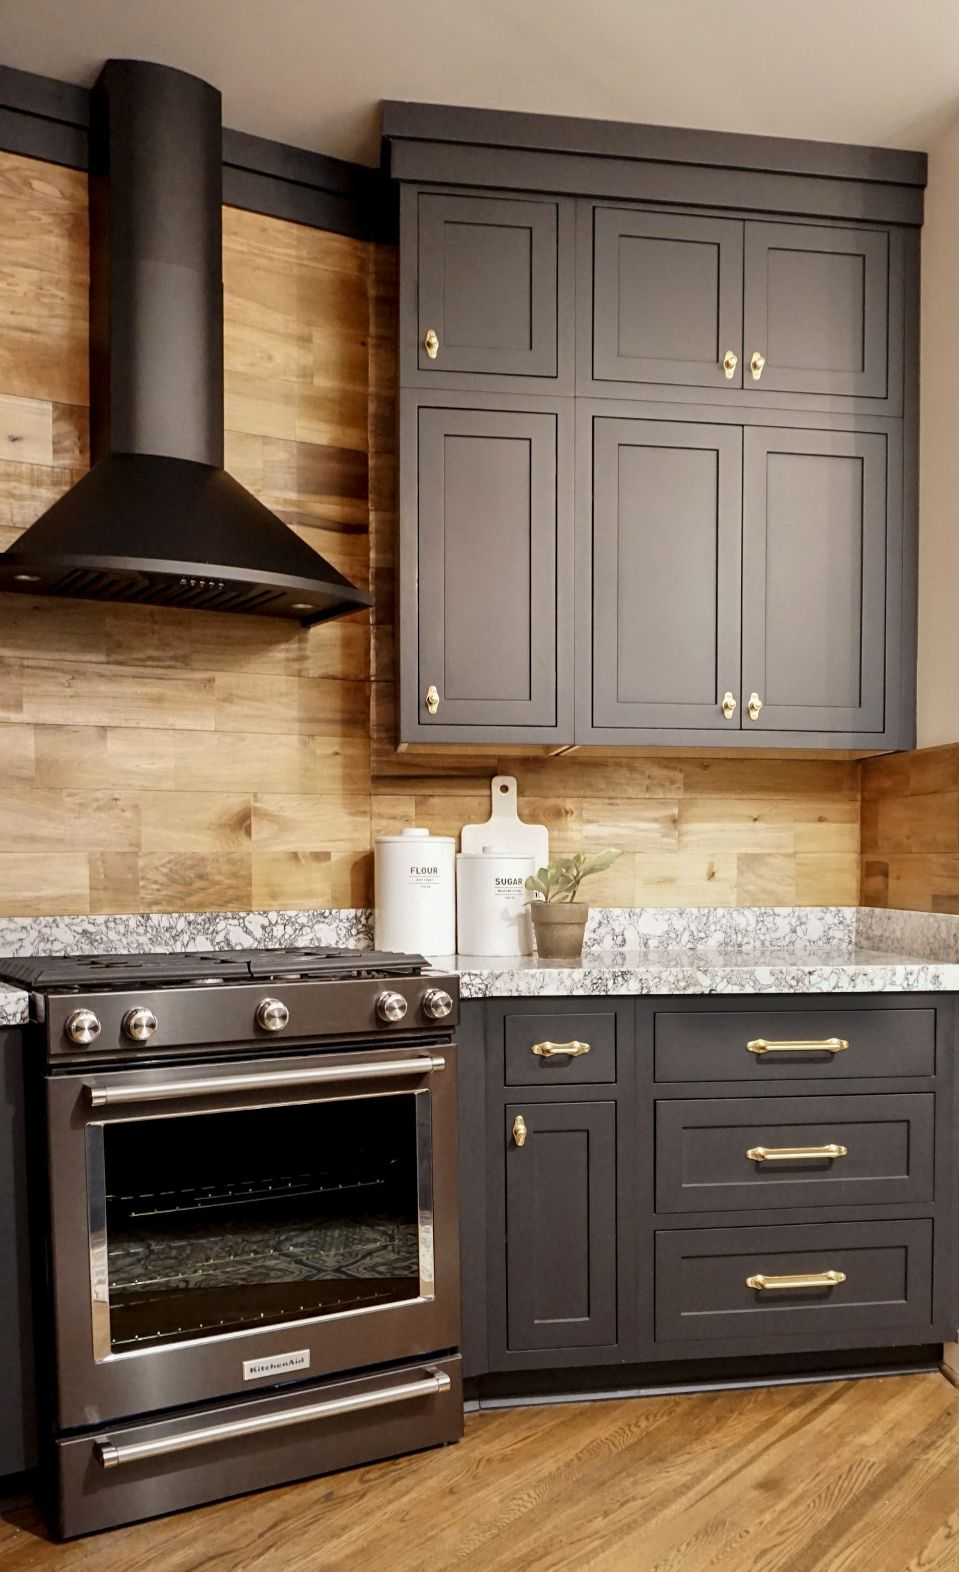 Add a luxurious marble-look with Cambria Rosedale.